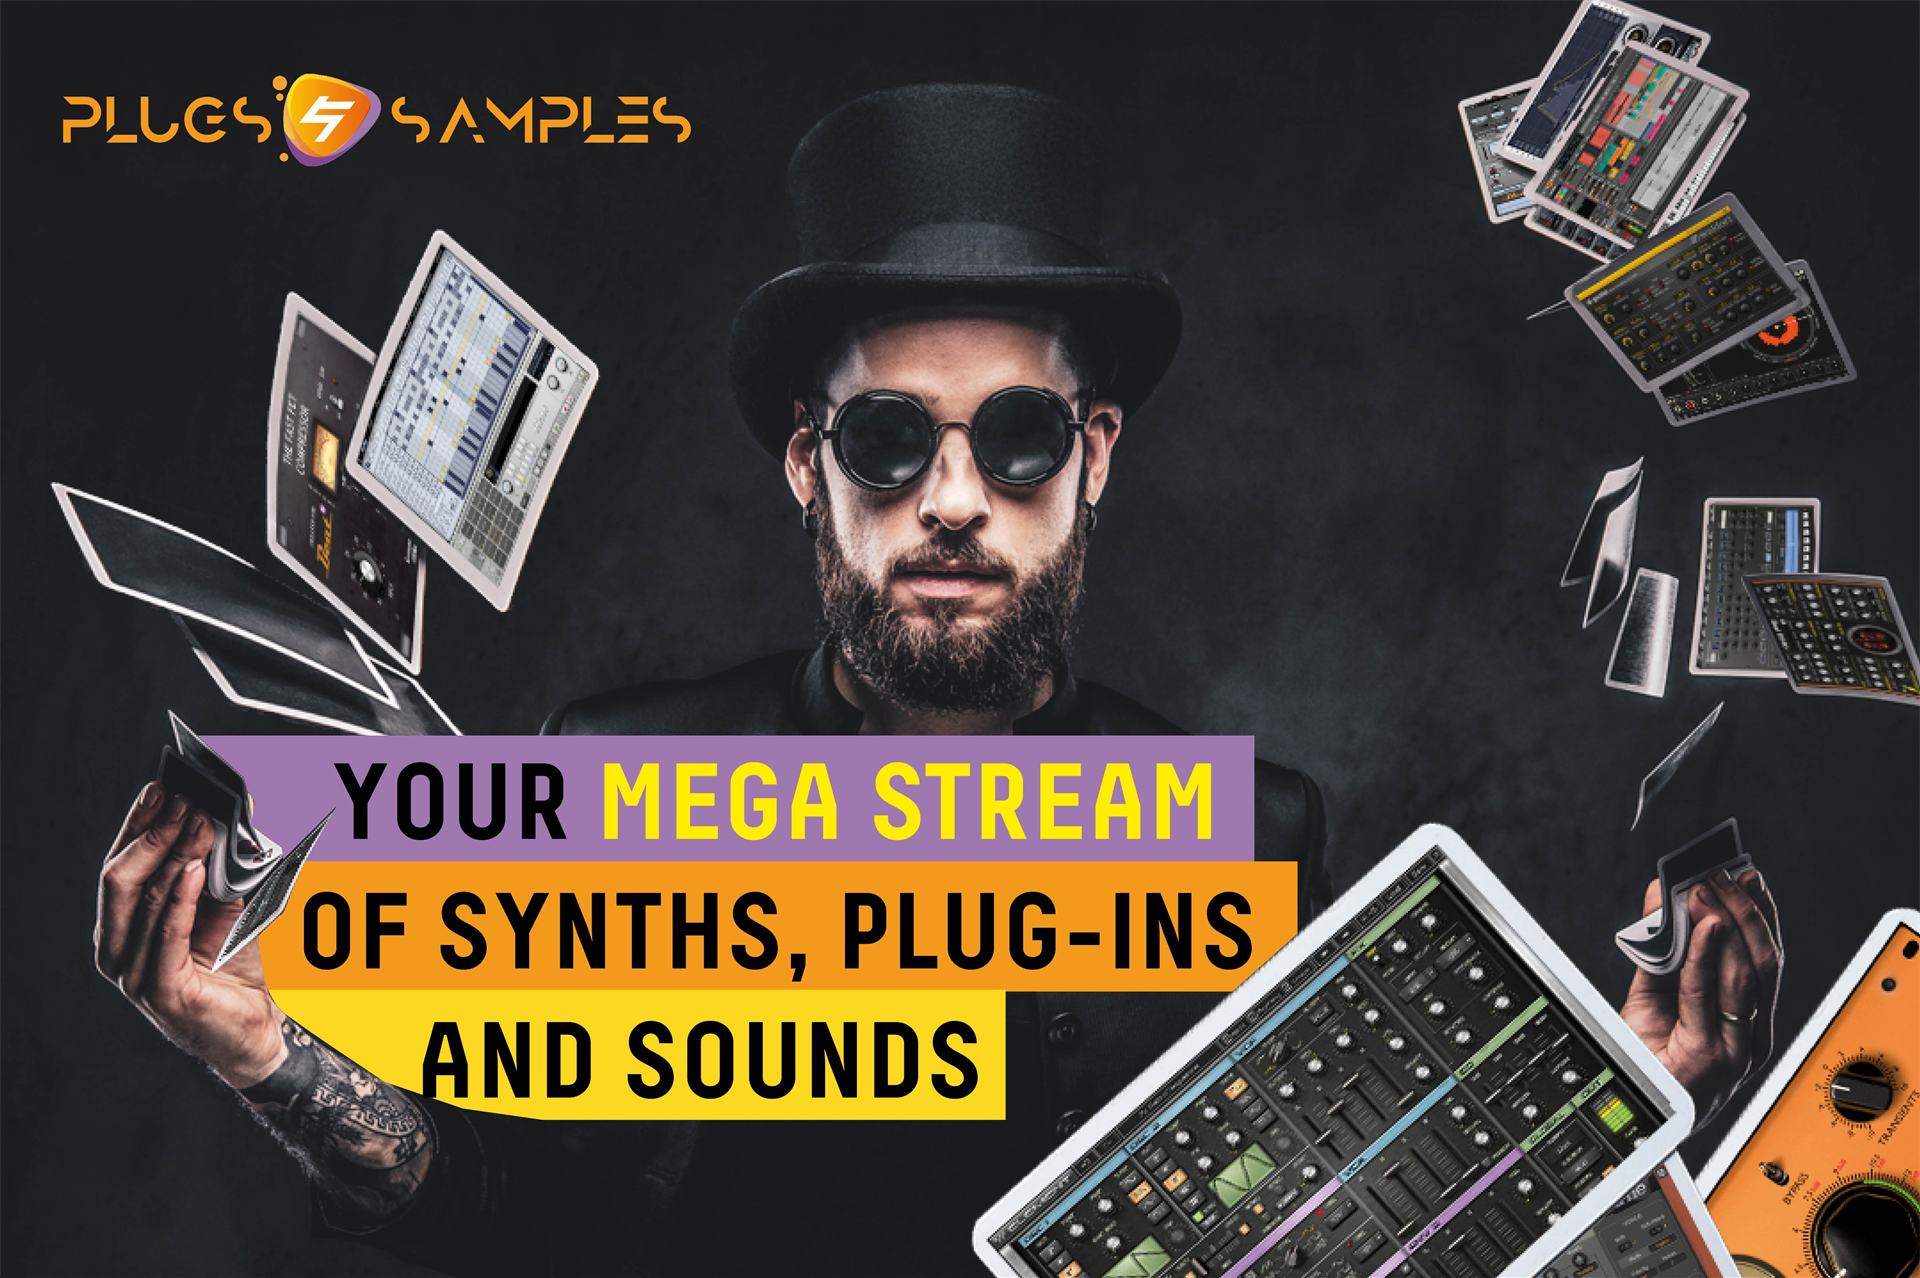 Plugin-Samples: Your mega stream of synths, plug-ins and sounds Screenshot